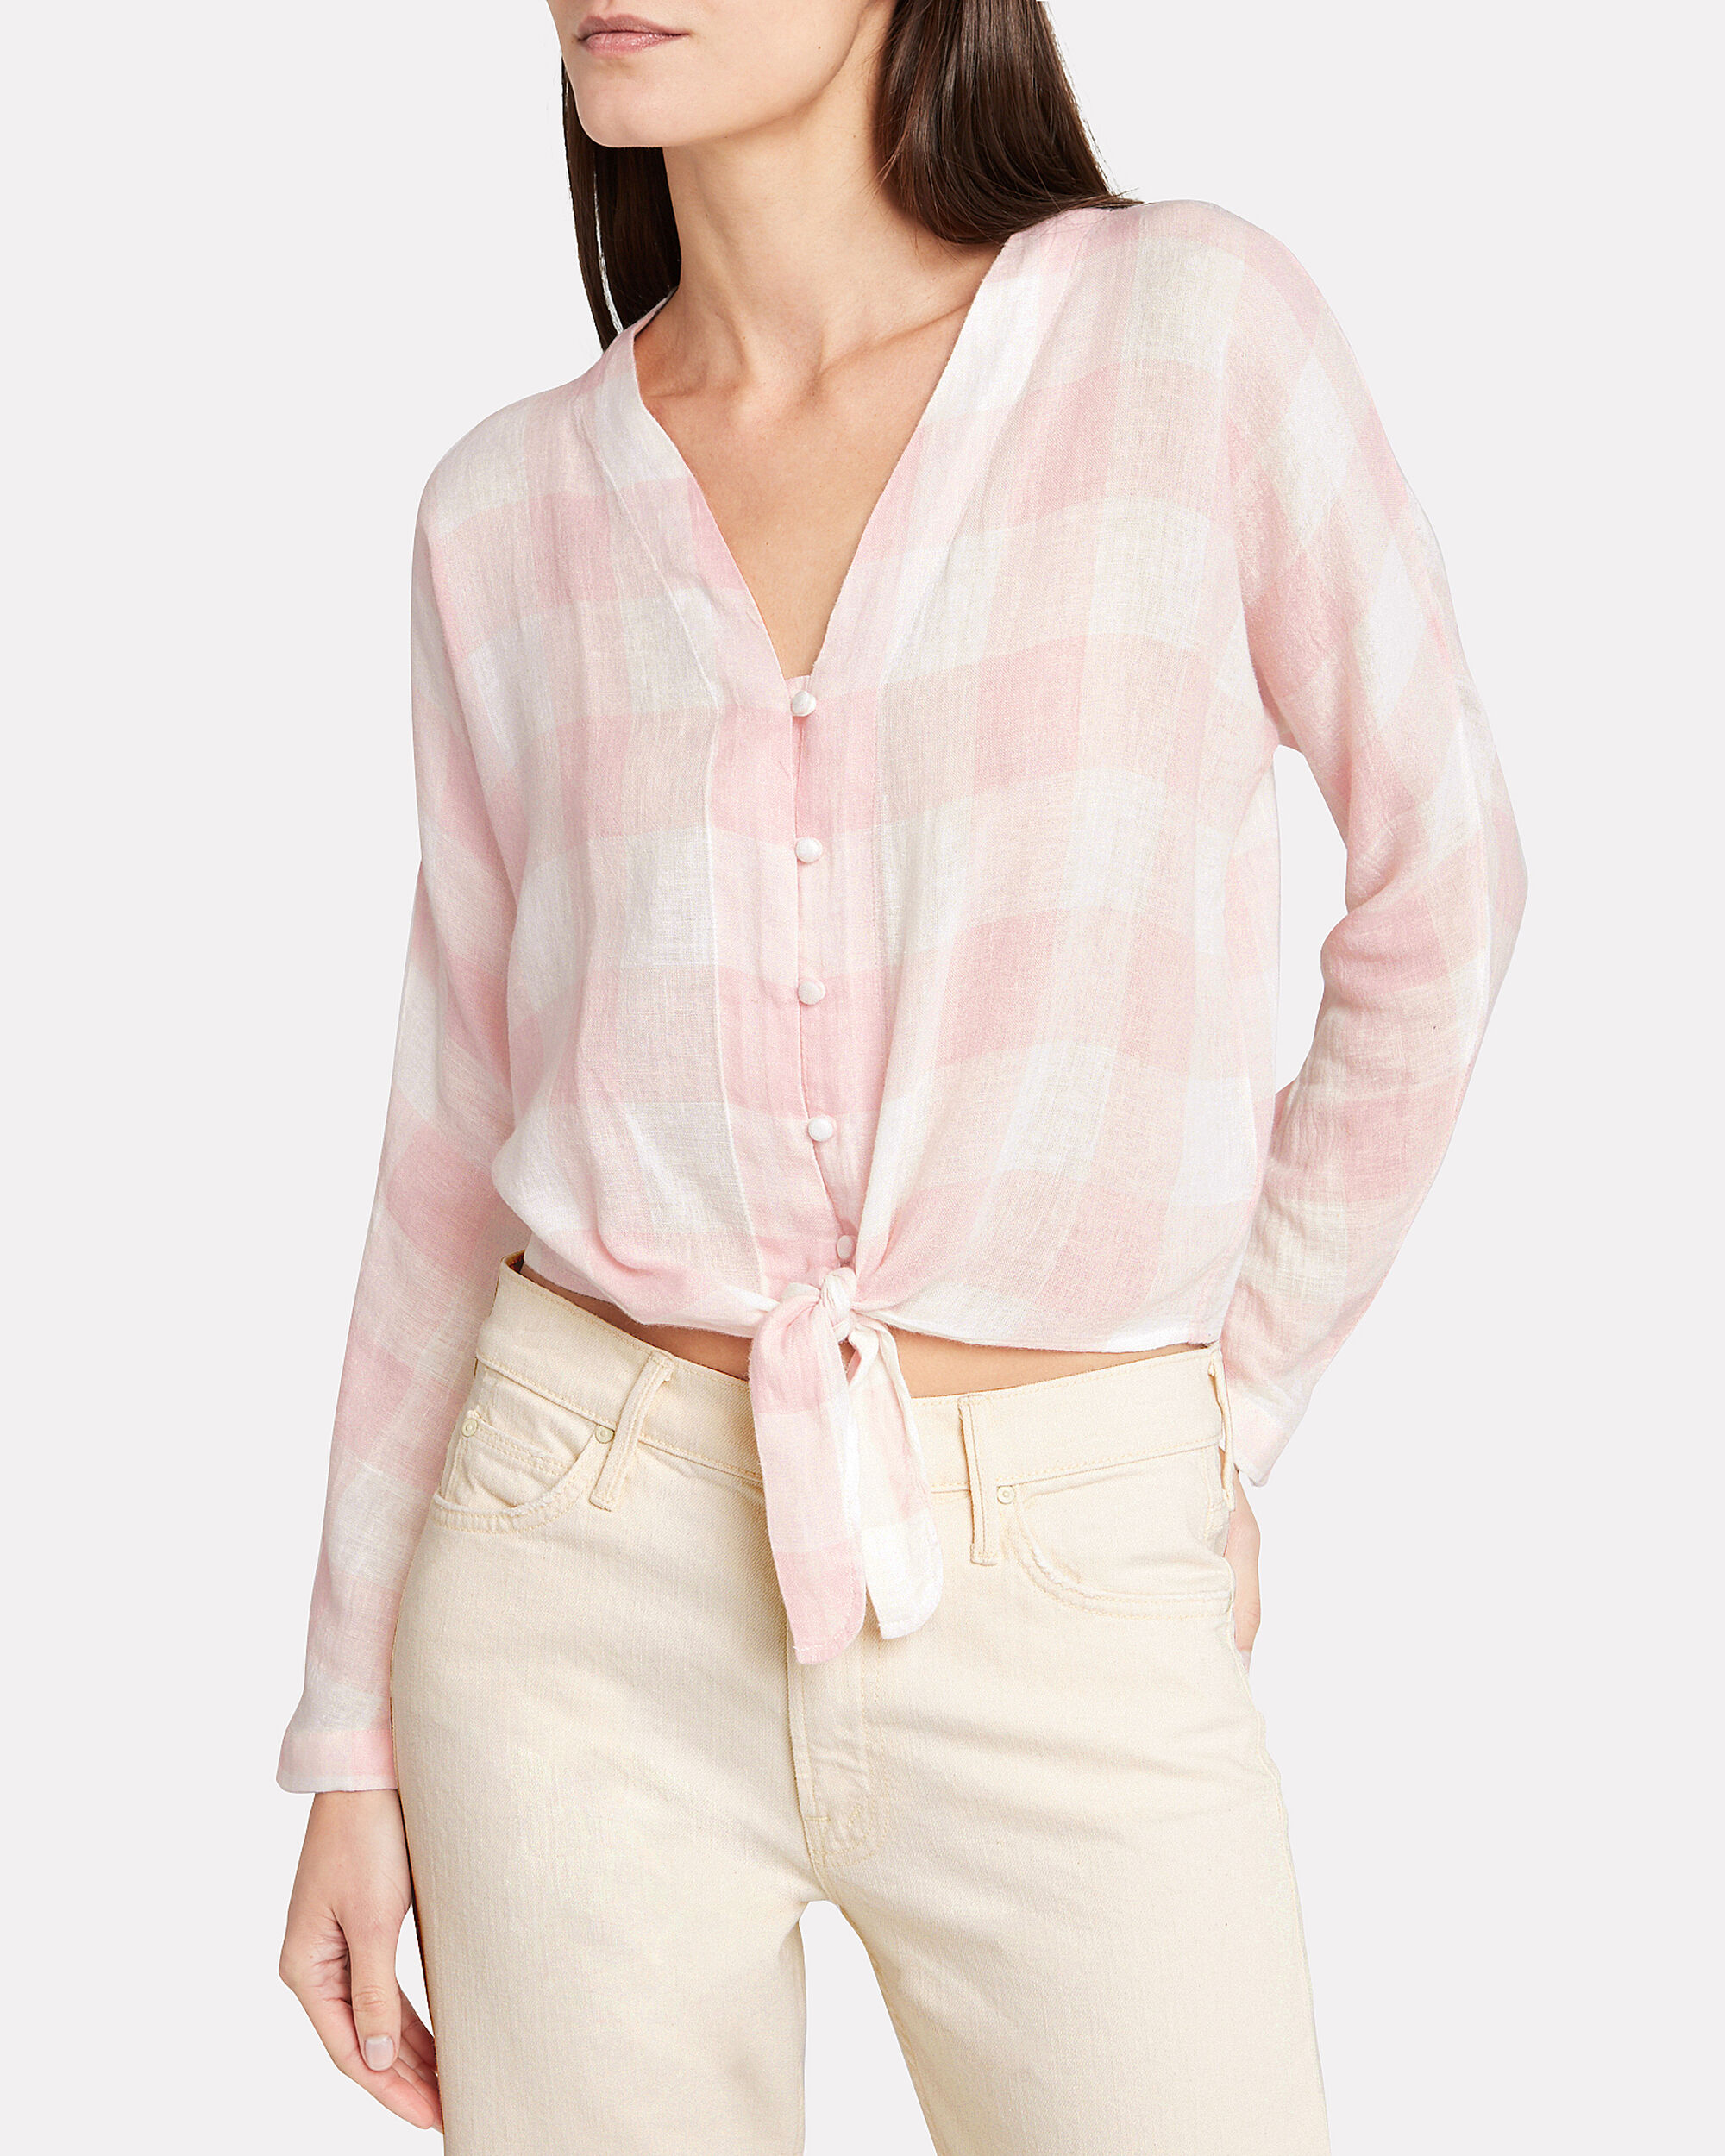 Sloane Button Down Shirt, PINK/WHITE, hi-res